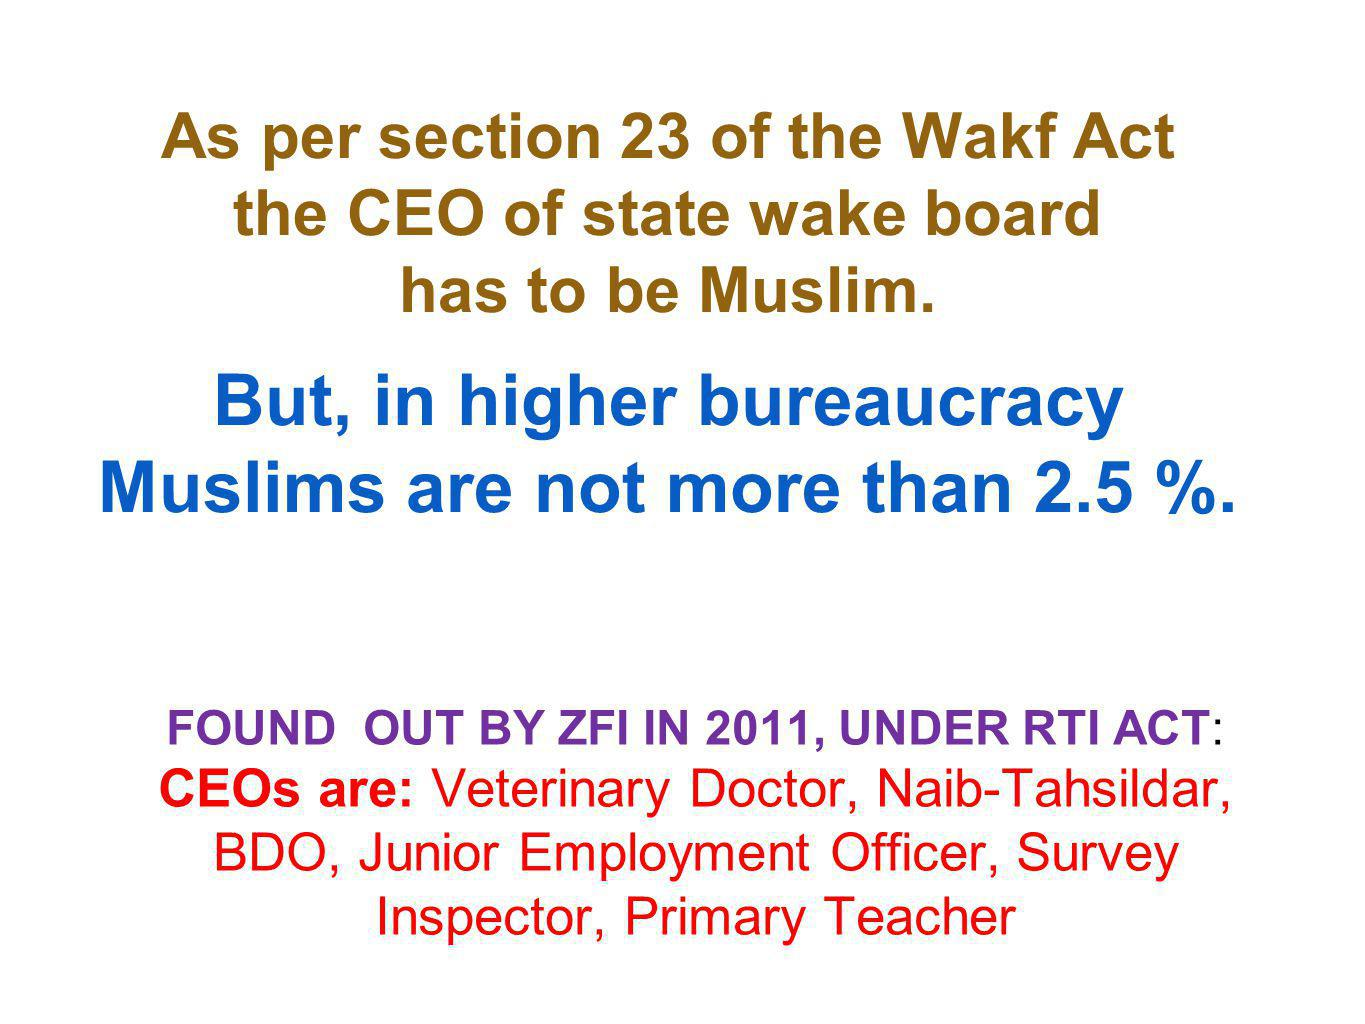 As per section 23 of the Wakf Act the CEO of state wake board has to be Muslim.